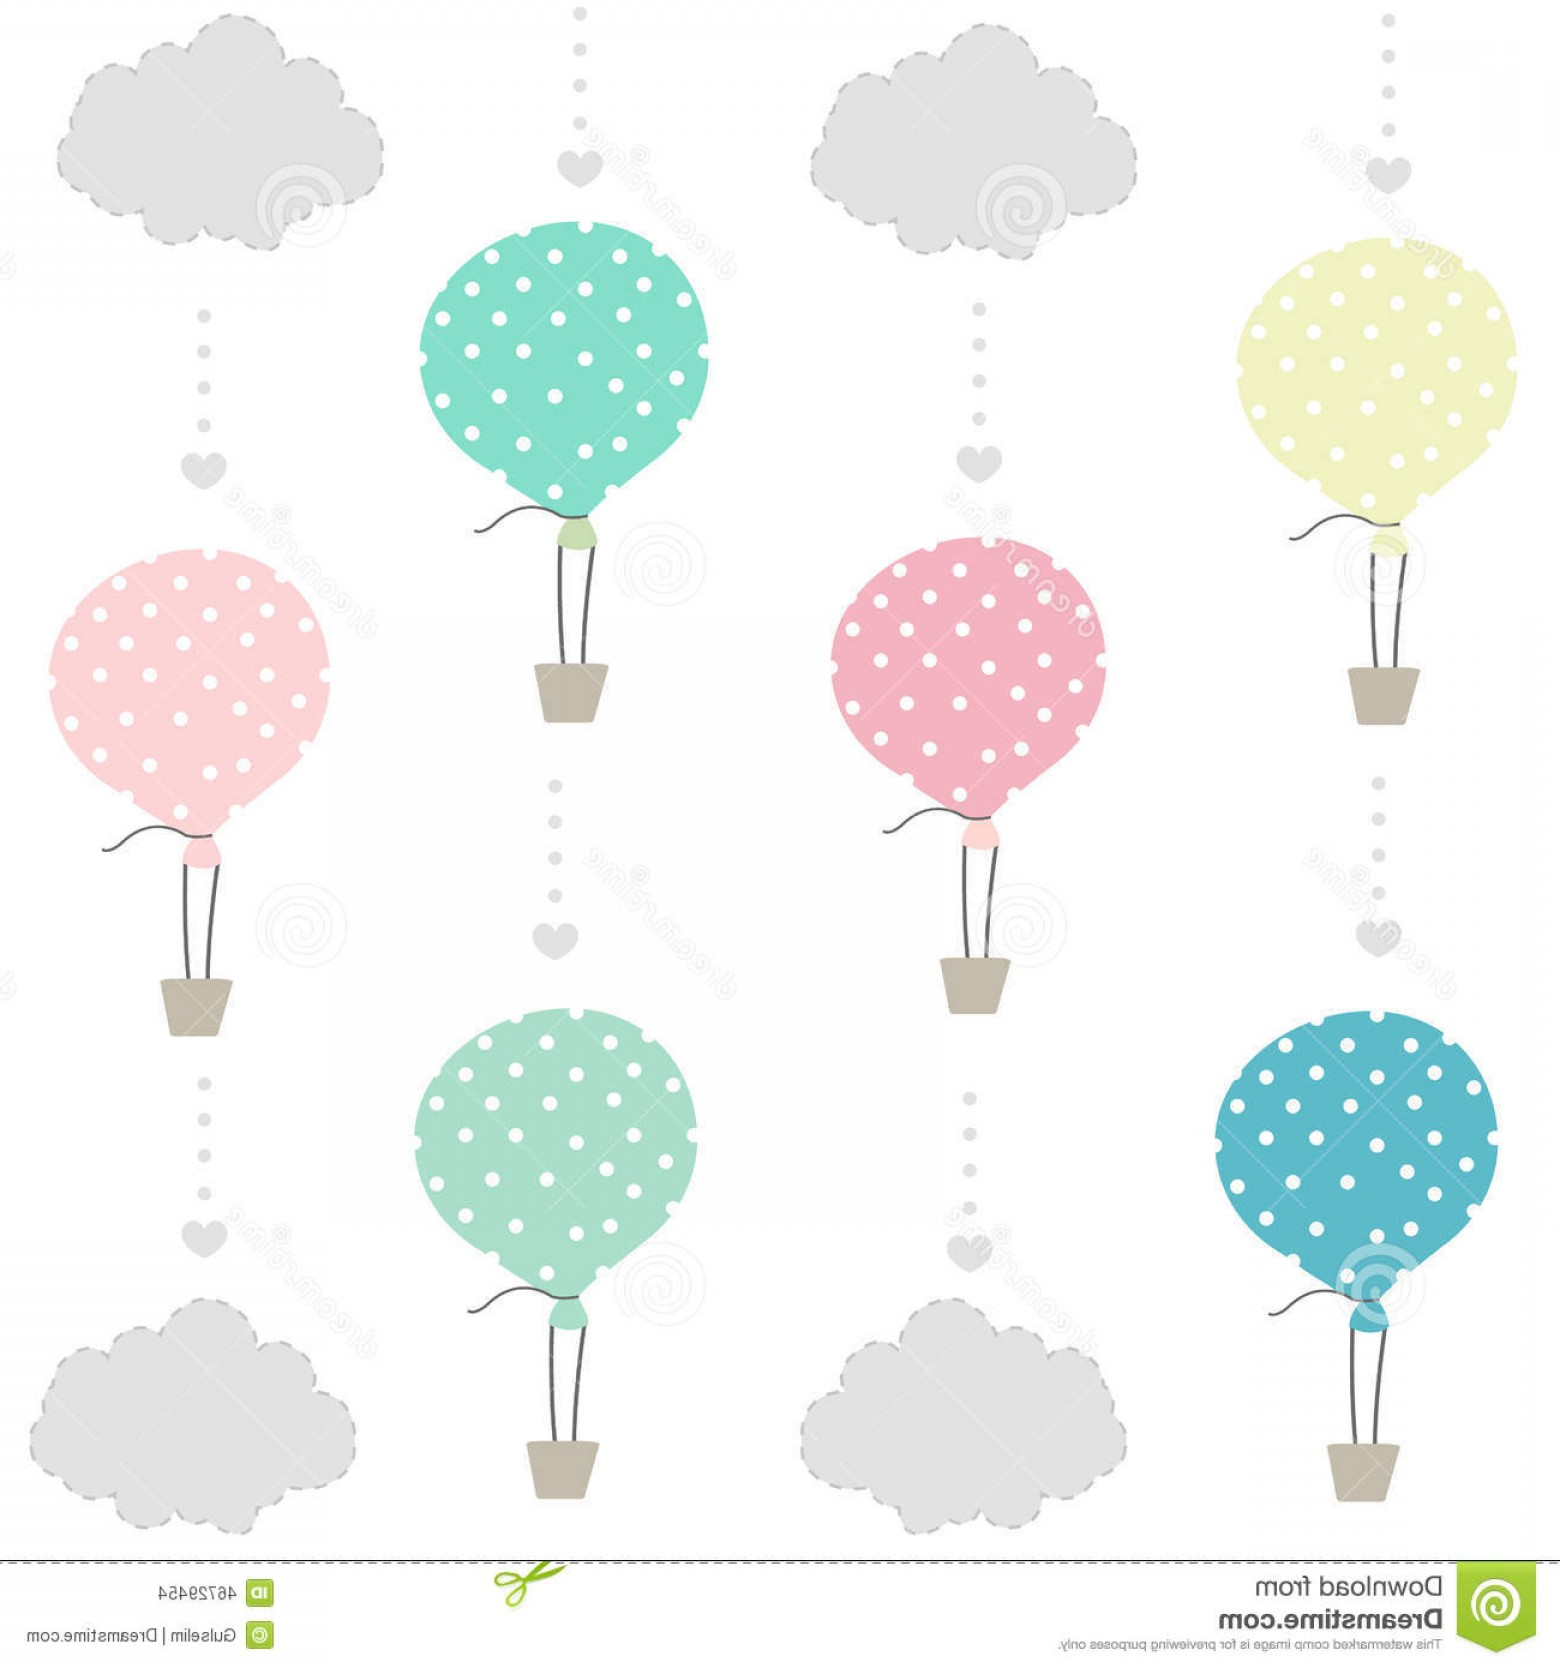 Balloons Vector Wallpaper: Stock Illustration Balloon Clouds Baby Pattern Wallpaper Background Vector Image